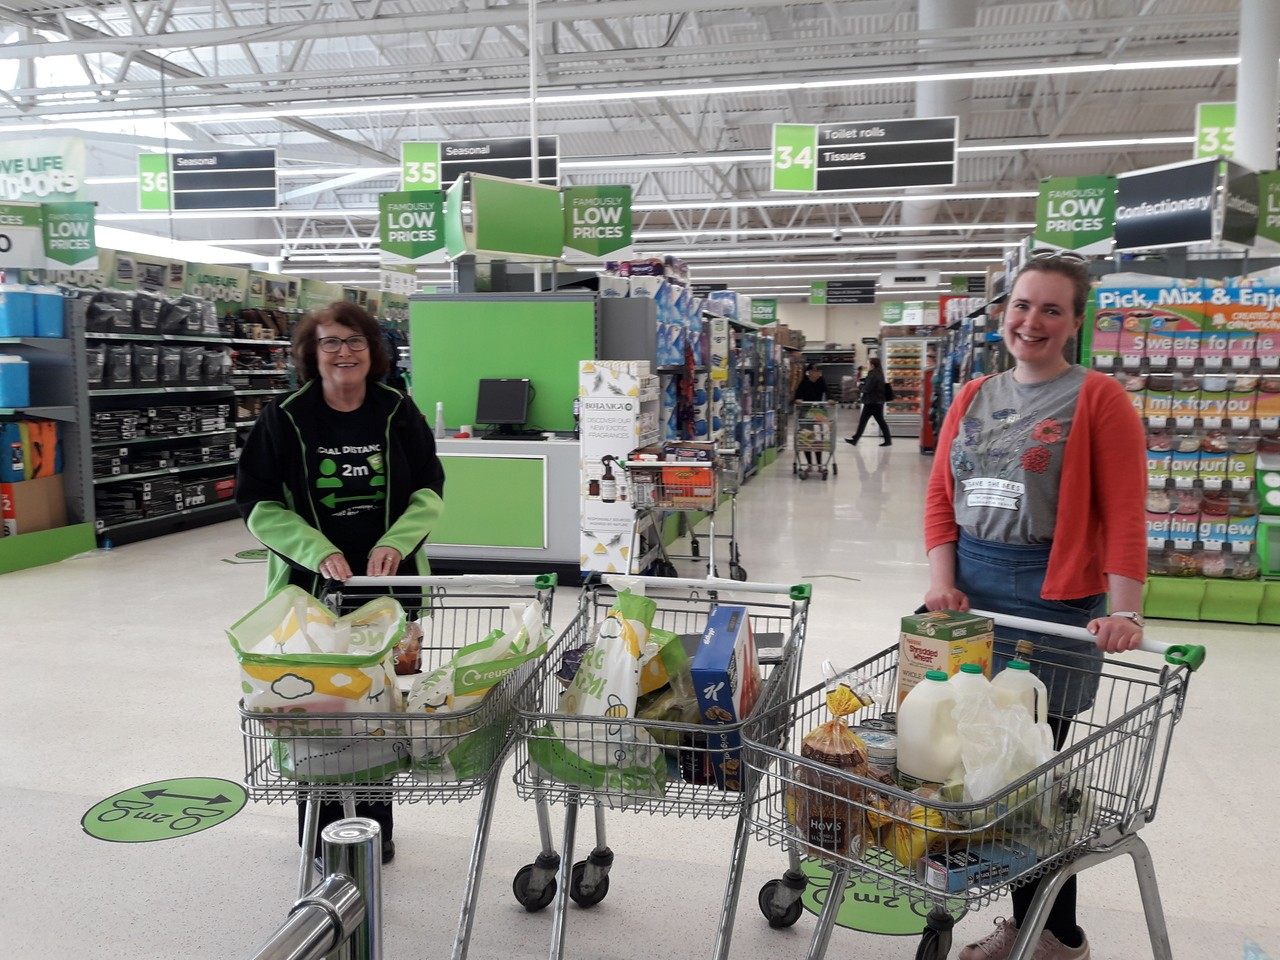 Working with the community | Asda Pudsey